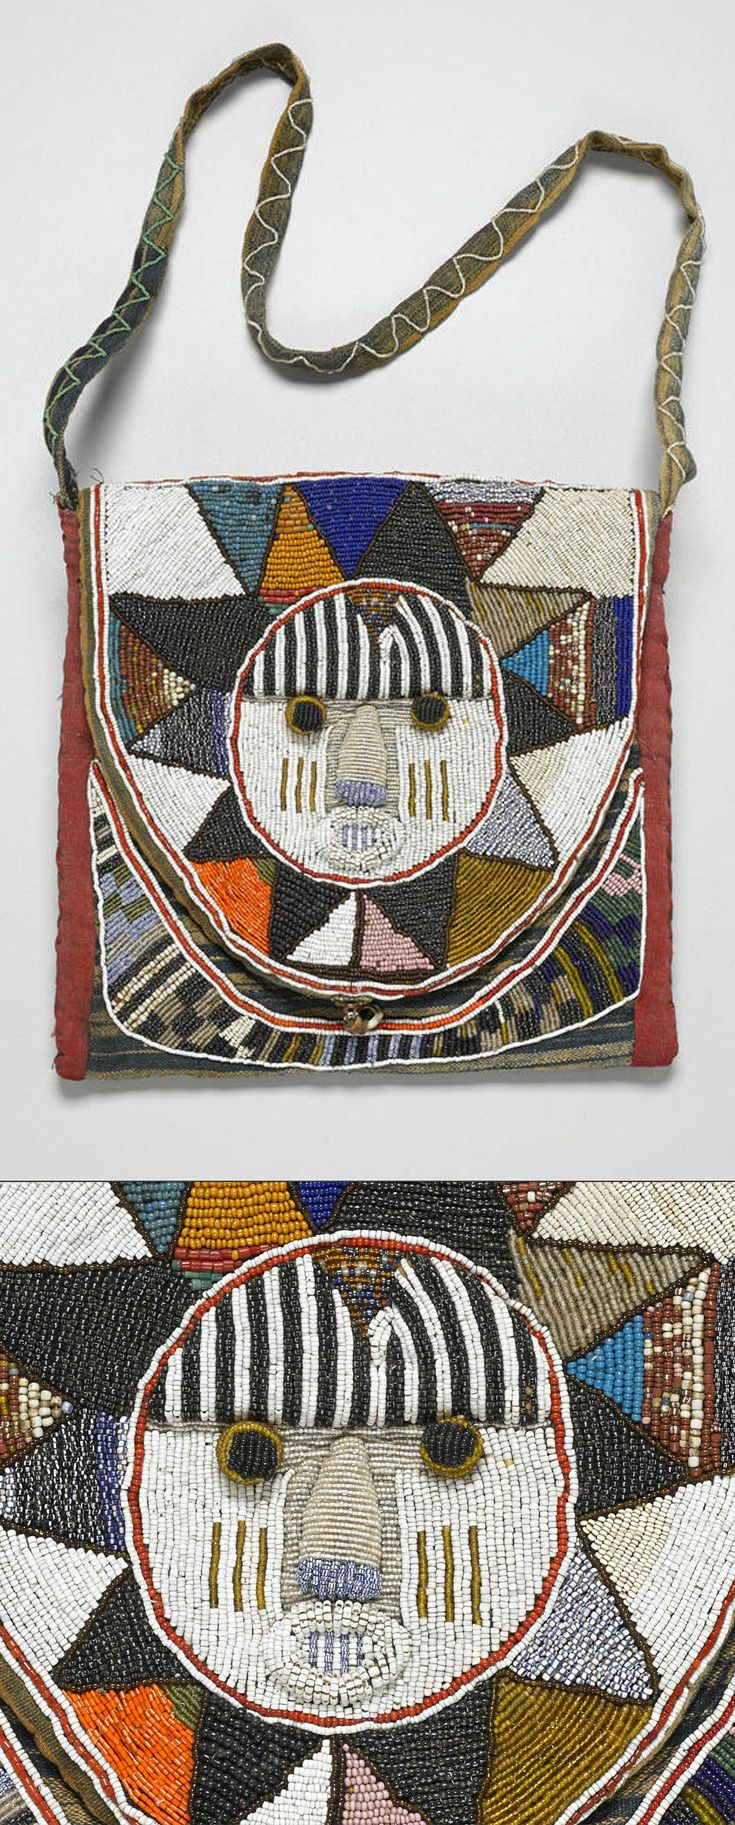 Africa   Diviner's bag ~ apo ifa ~ from the Yoruba people of Nigeria   Glass beads, cotton; bead embroidery (couching)